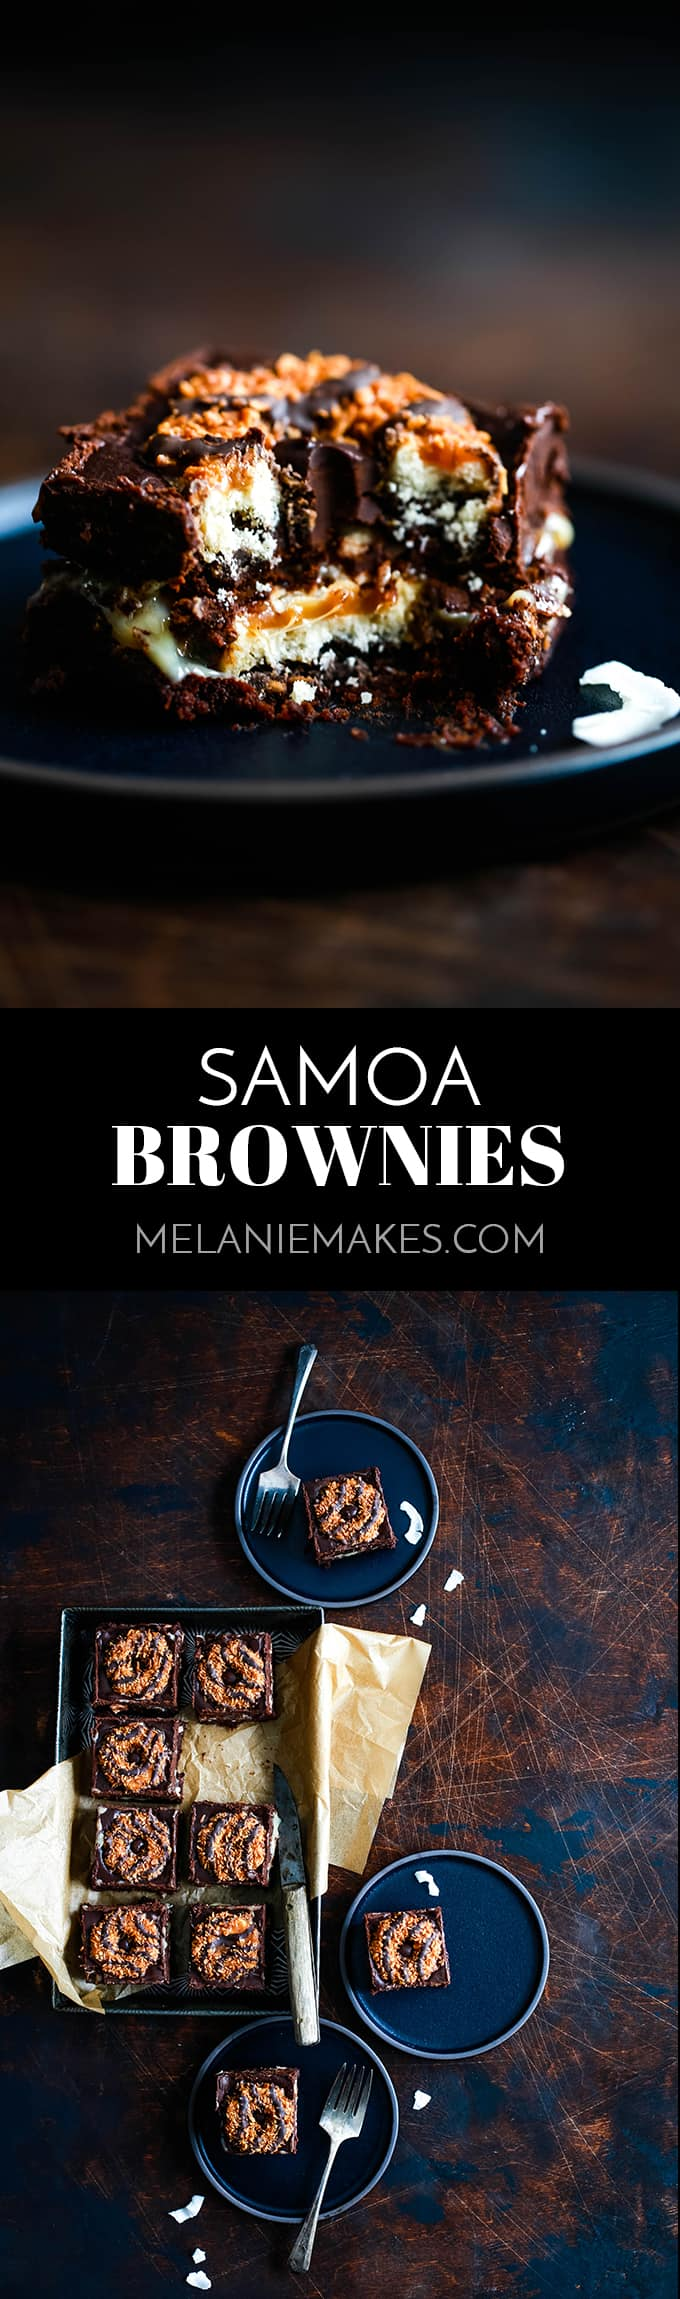 This decadent Samoa Brownies recipe has it all!  Fudgy brownie, two layers of Samoa Girl Scout cookies, dulce de leche, coconut and chocolate ganache. #brownies #chocolate #cookies #caramel #coconut #desserts